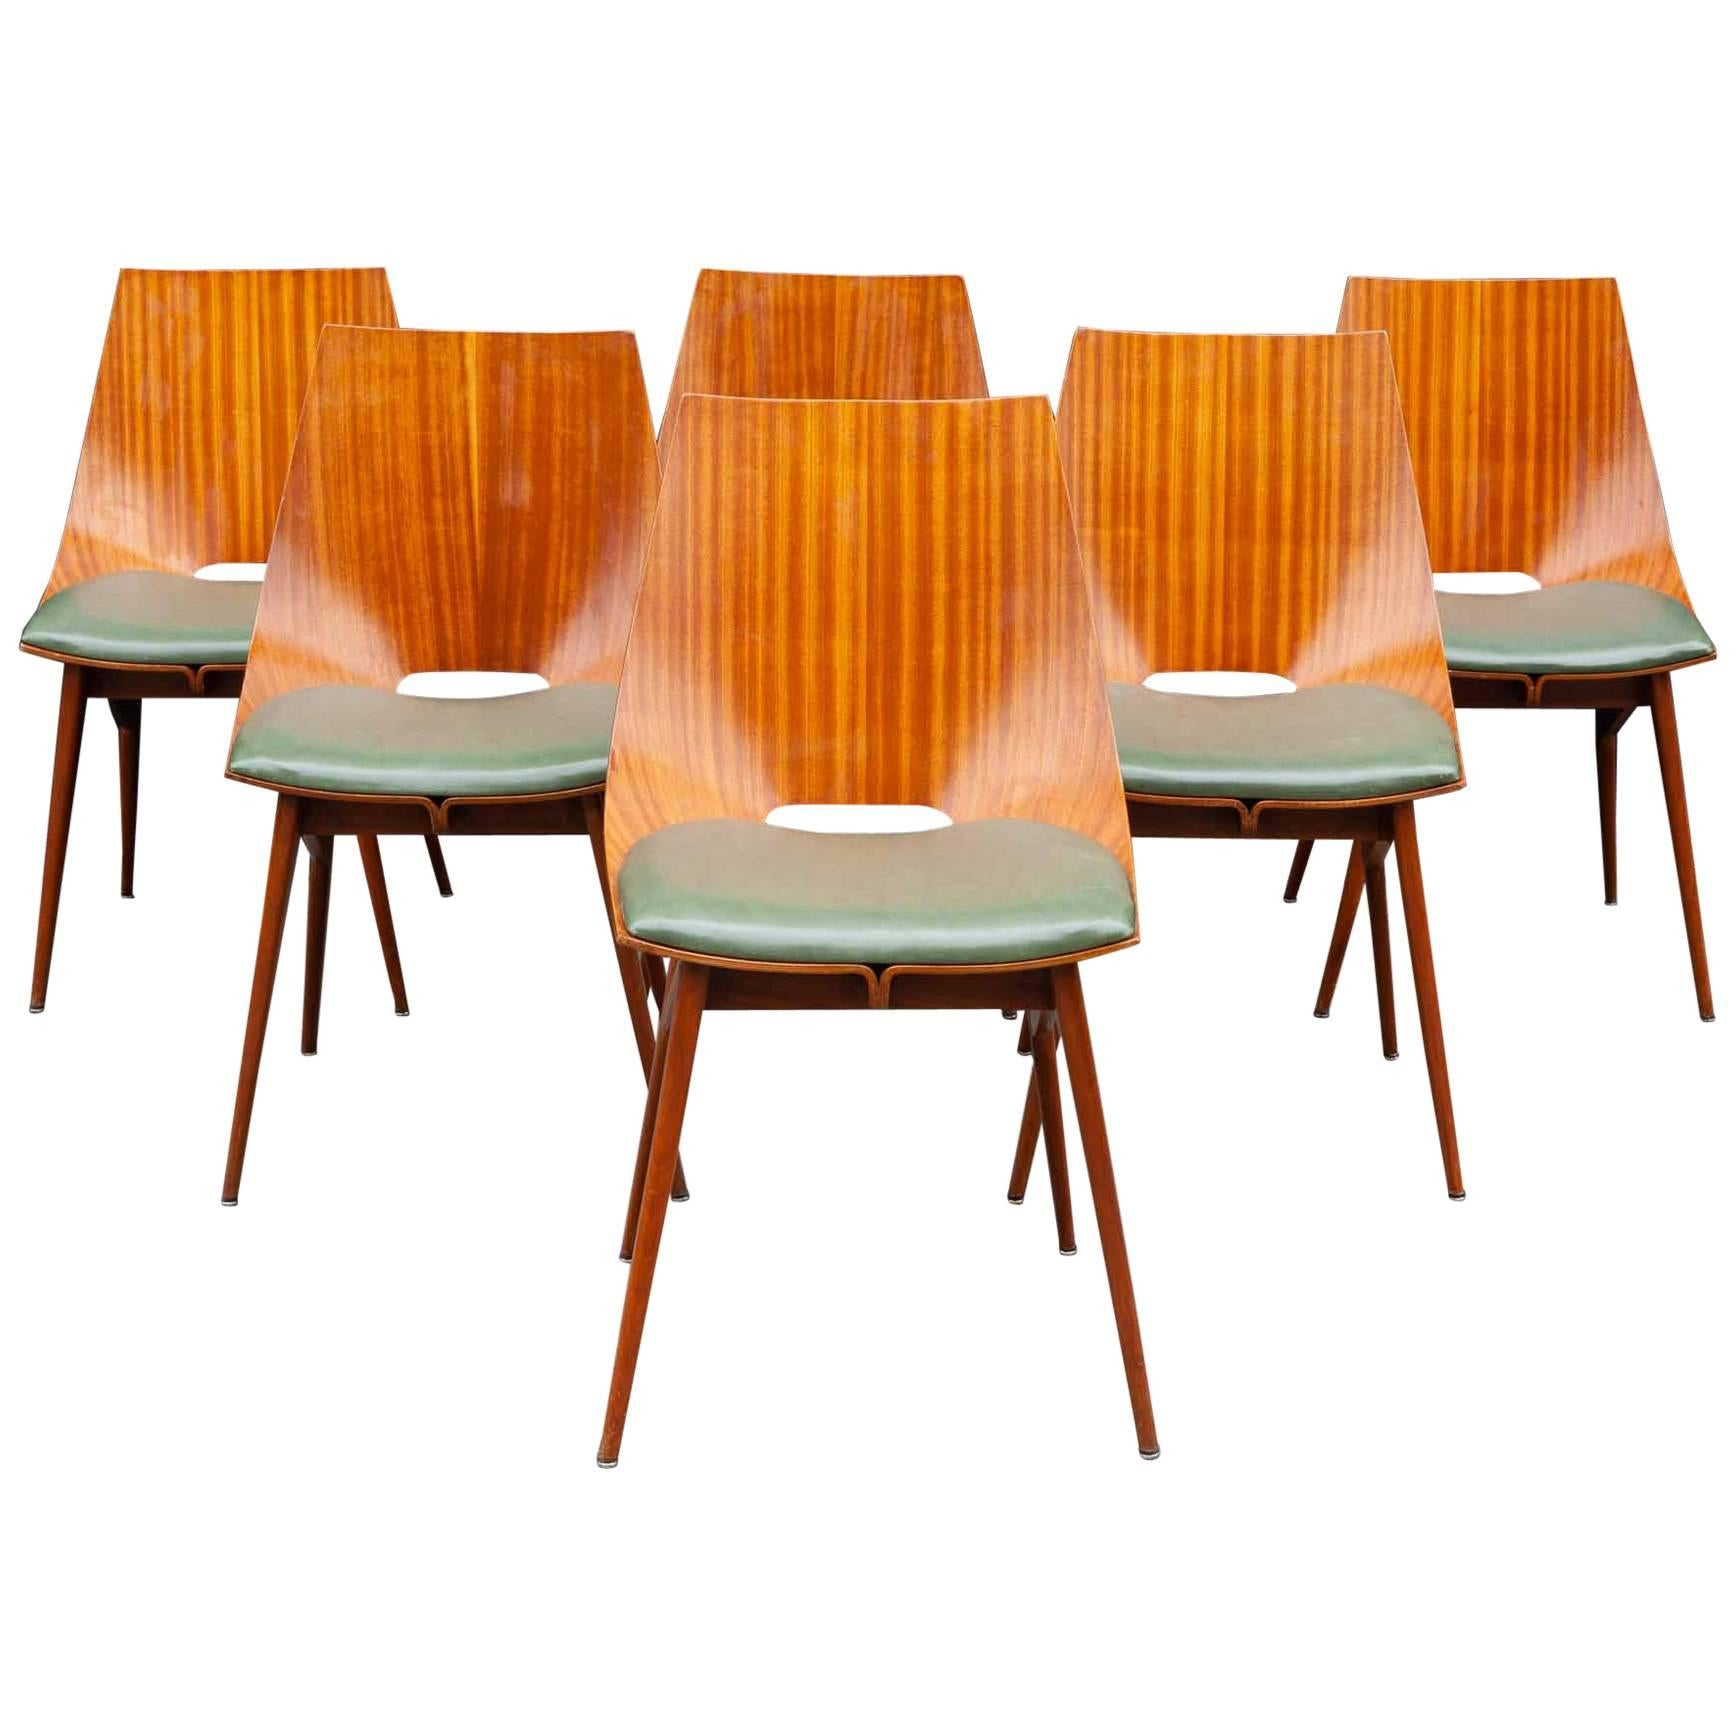 bentwood dining chair folding with armrest 1950s italian teak chairs for sale at 1stdibs